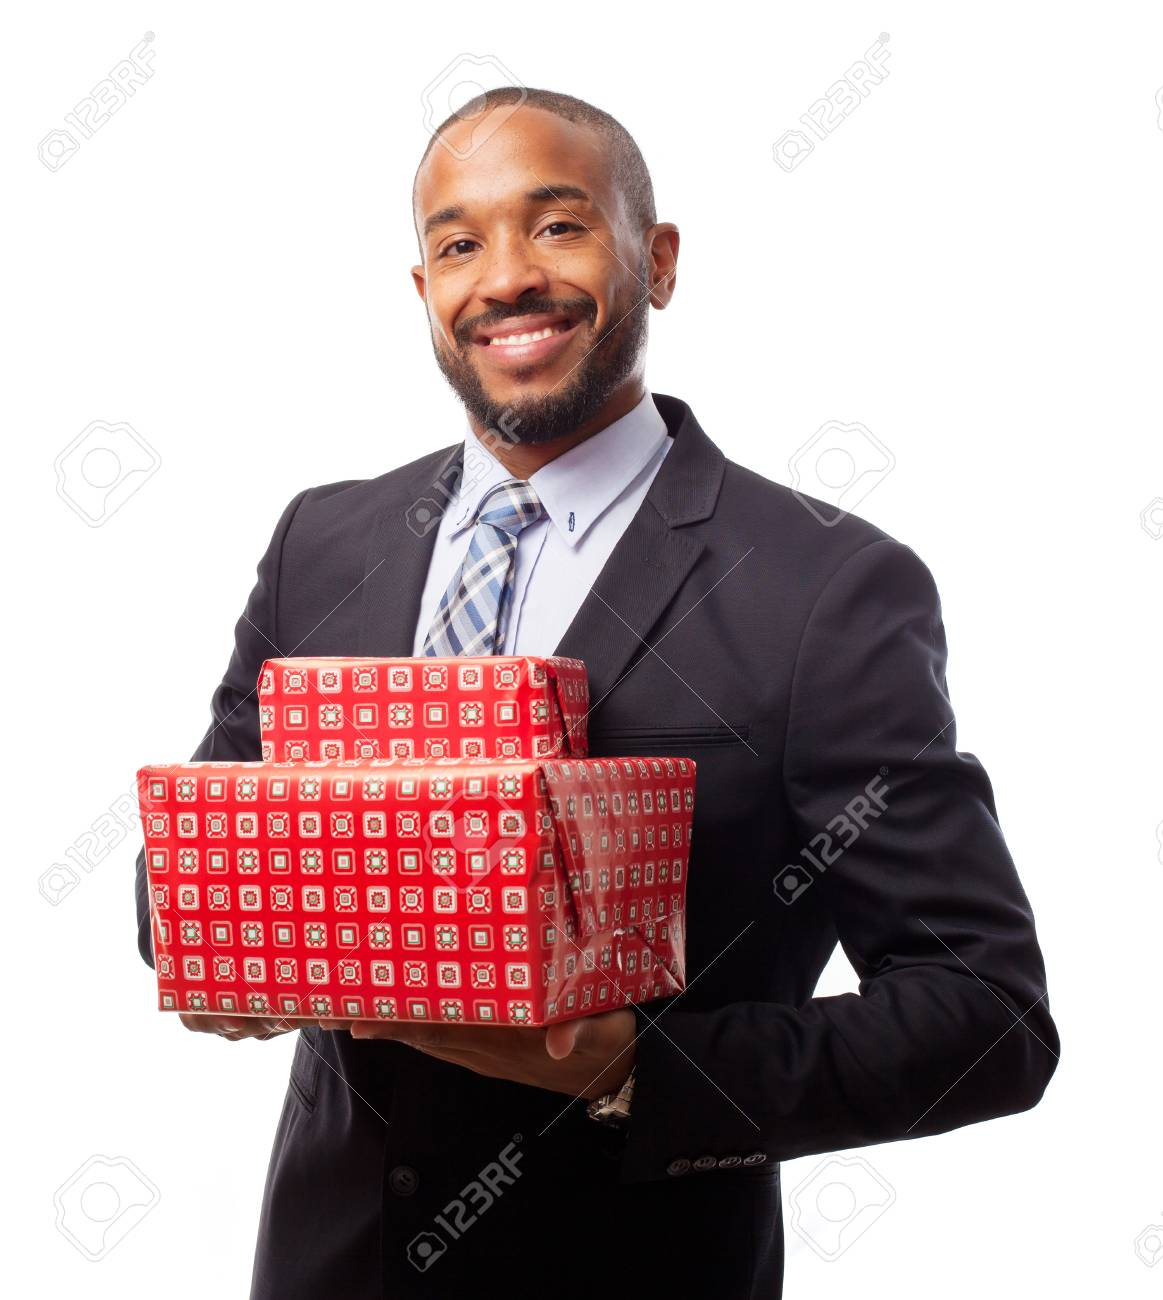 Stock Photo - young cool black man with gift boxes  sc 1 st  123RF.com & Young Cool Black Man With Gift Boxes Stock Photo Picture And ...